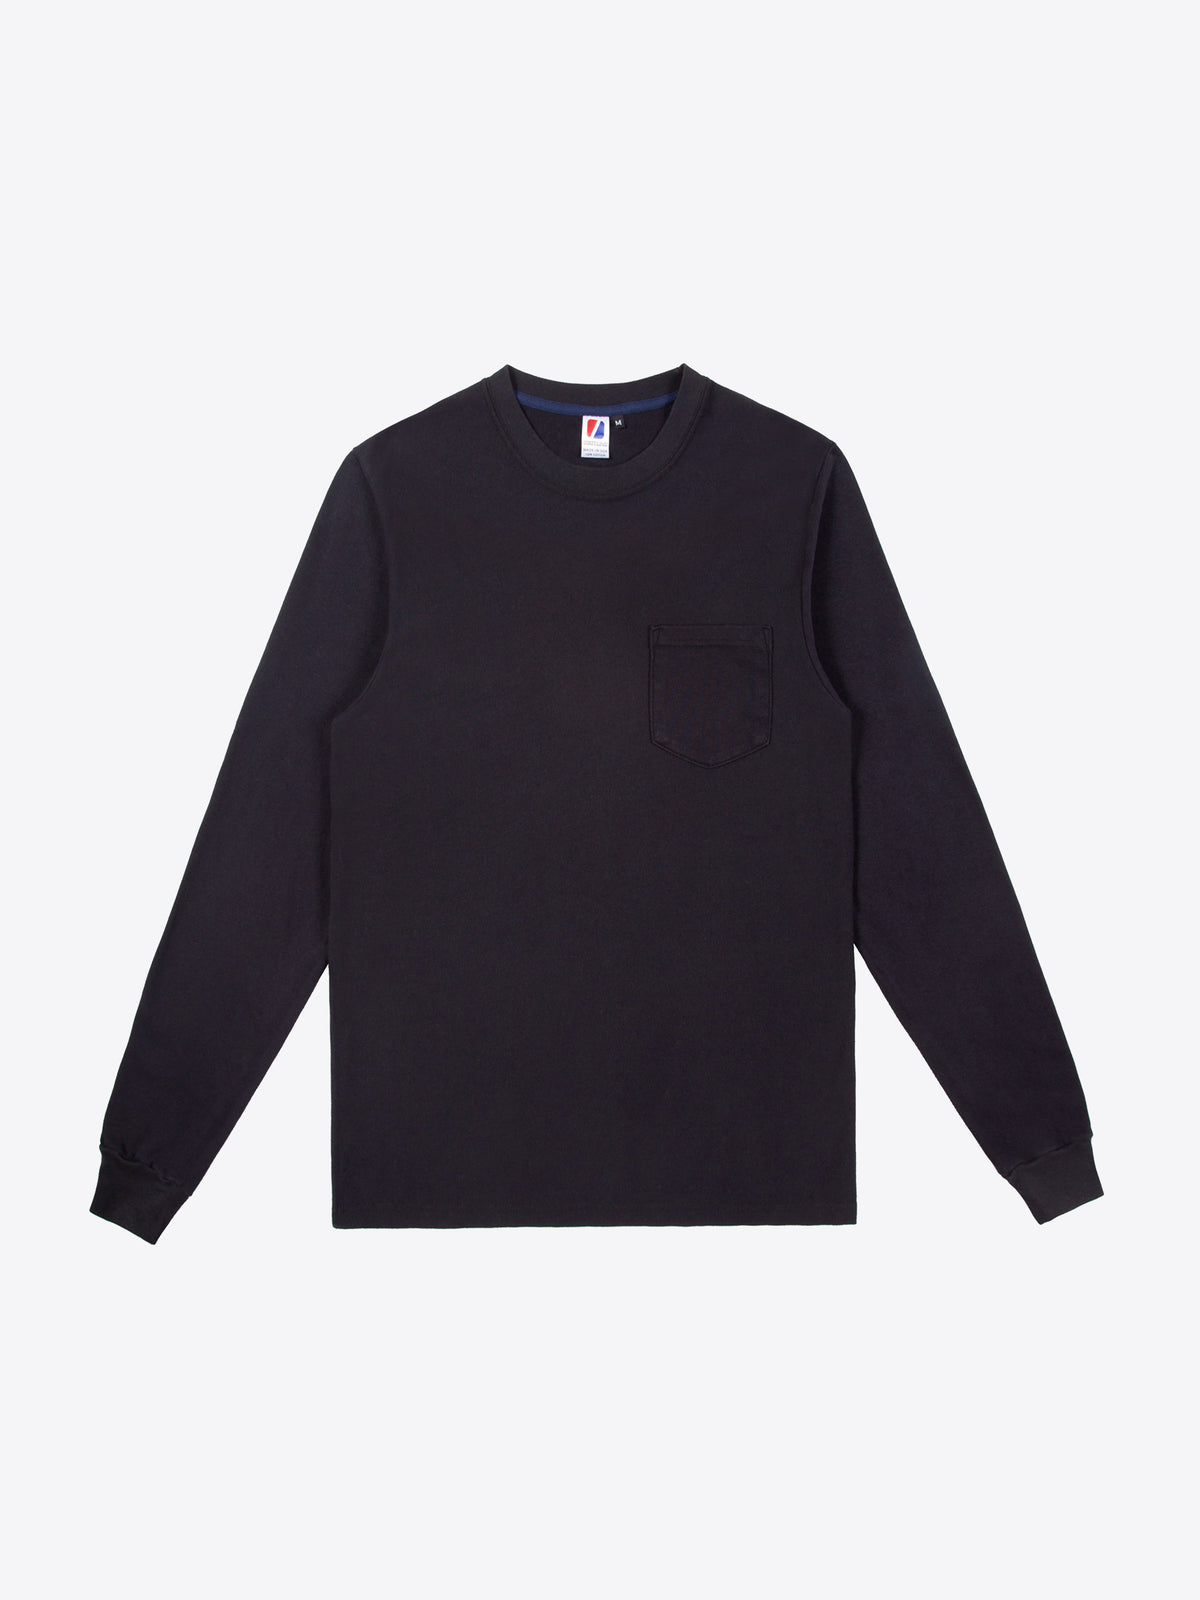 Rugby L/S Pocket Tee - Black